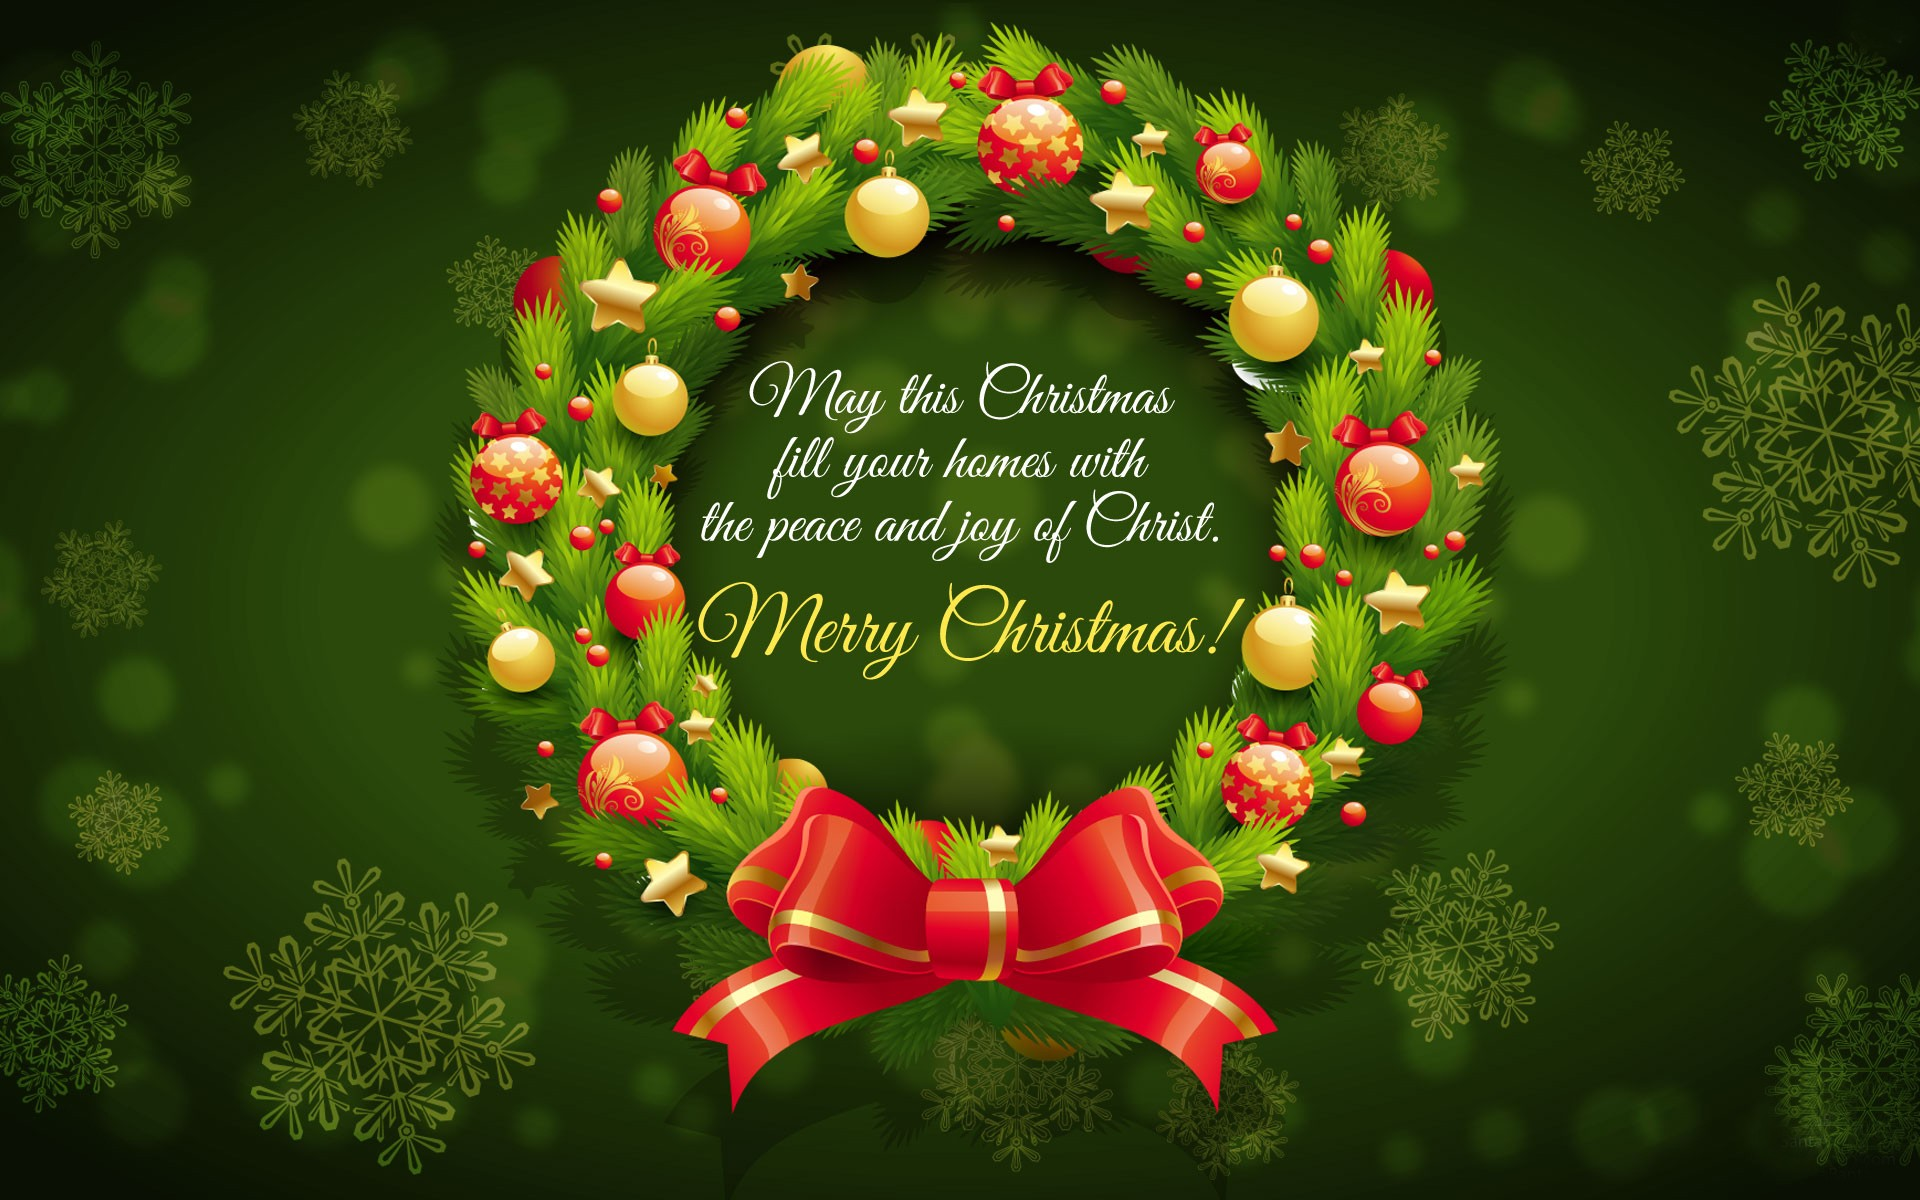 Your Quotes Christmas Happy And Year Merry Family Wishing You And New